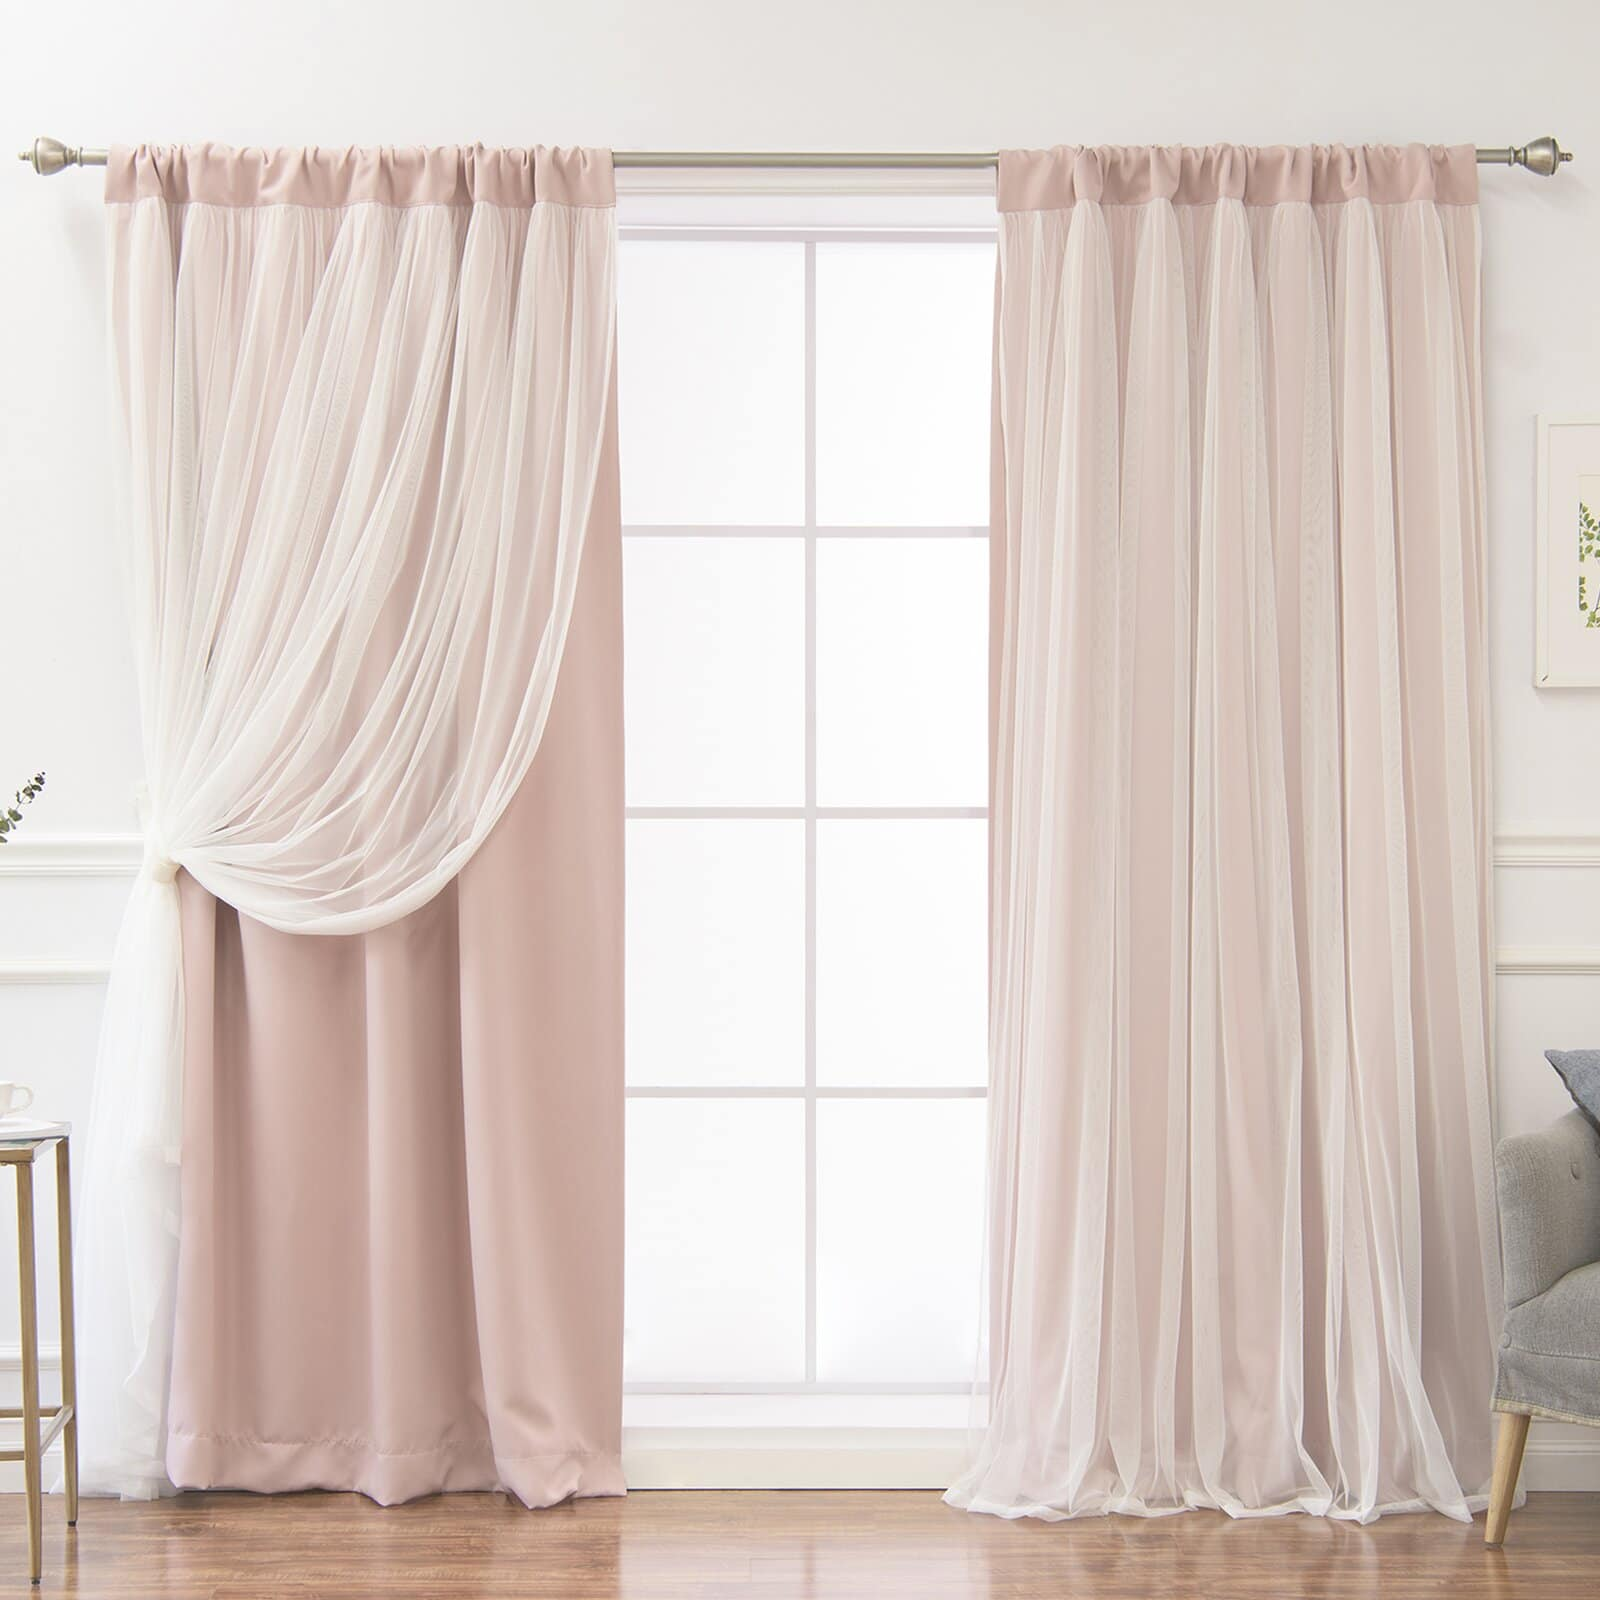 Dusty Pink and Tulle Curtains With White Walls